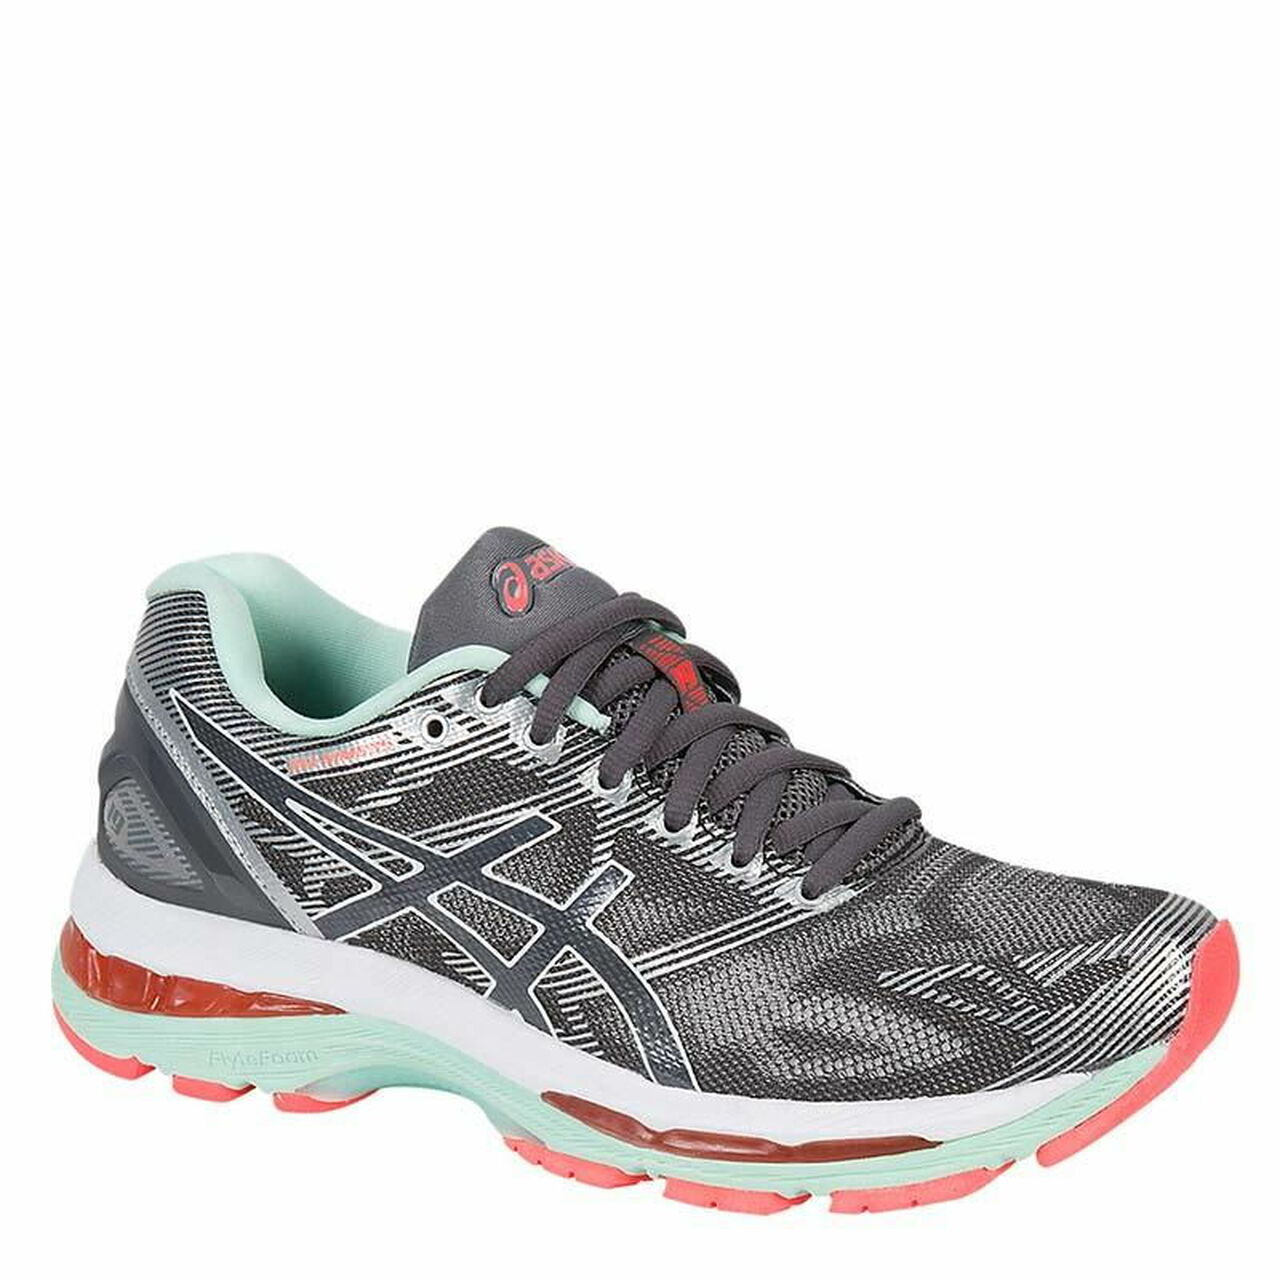 timeless design f6cc2 45c12 ASICS T750N.9701 Women's GEL NIMBUS 19 Running Shoes